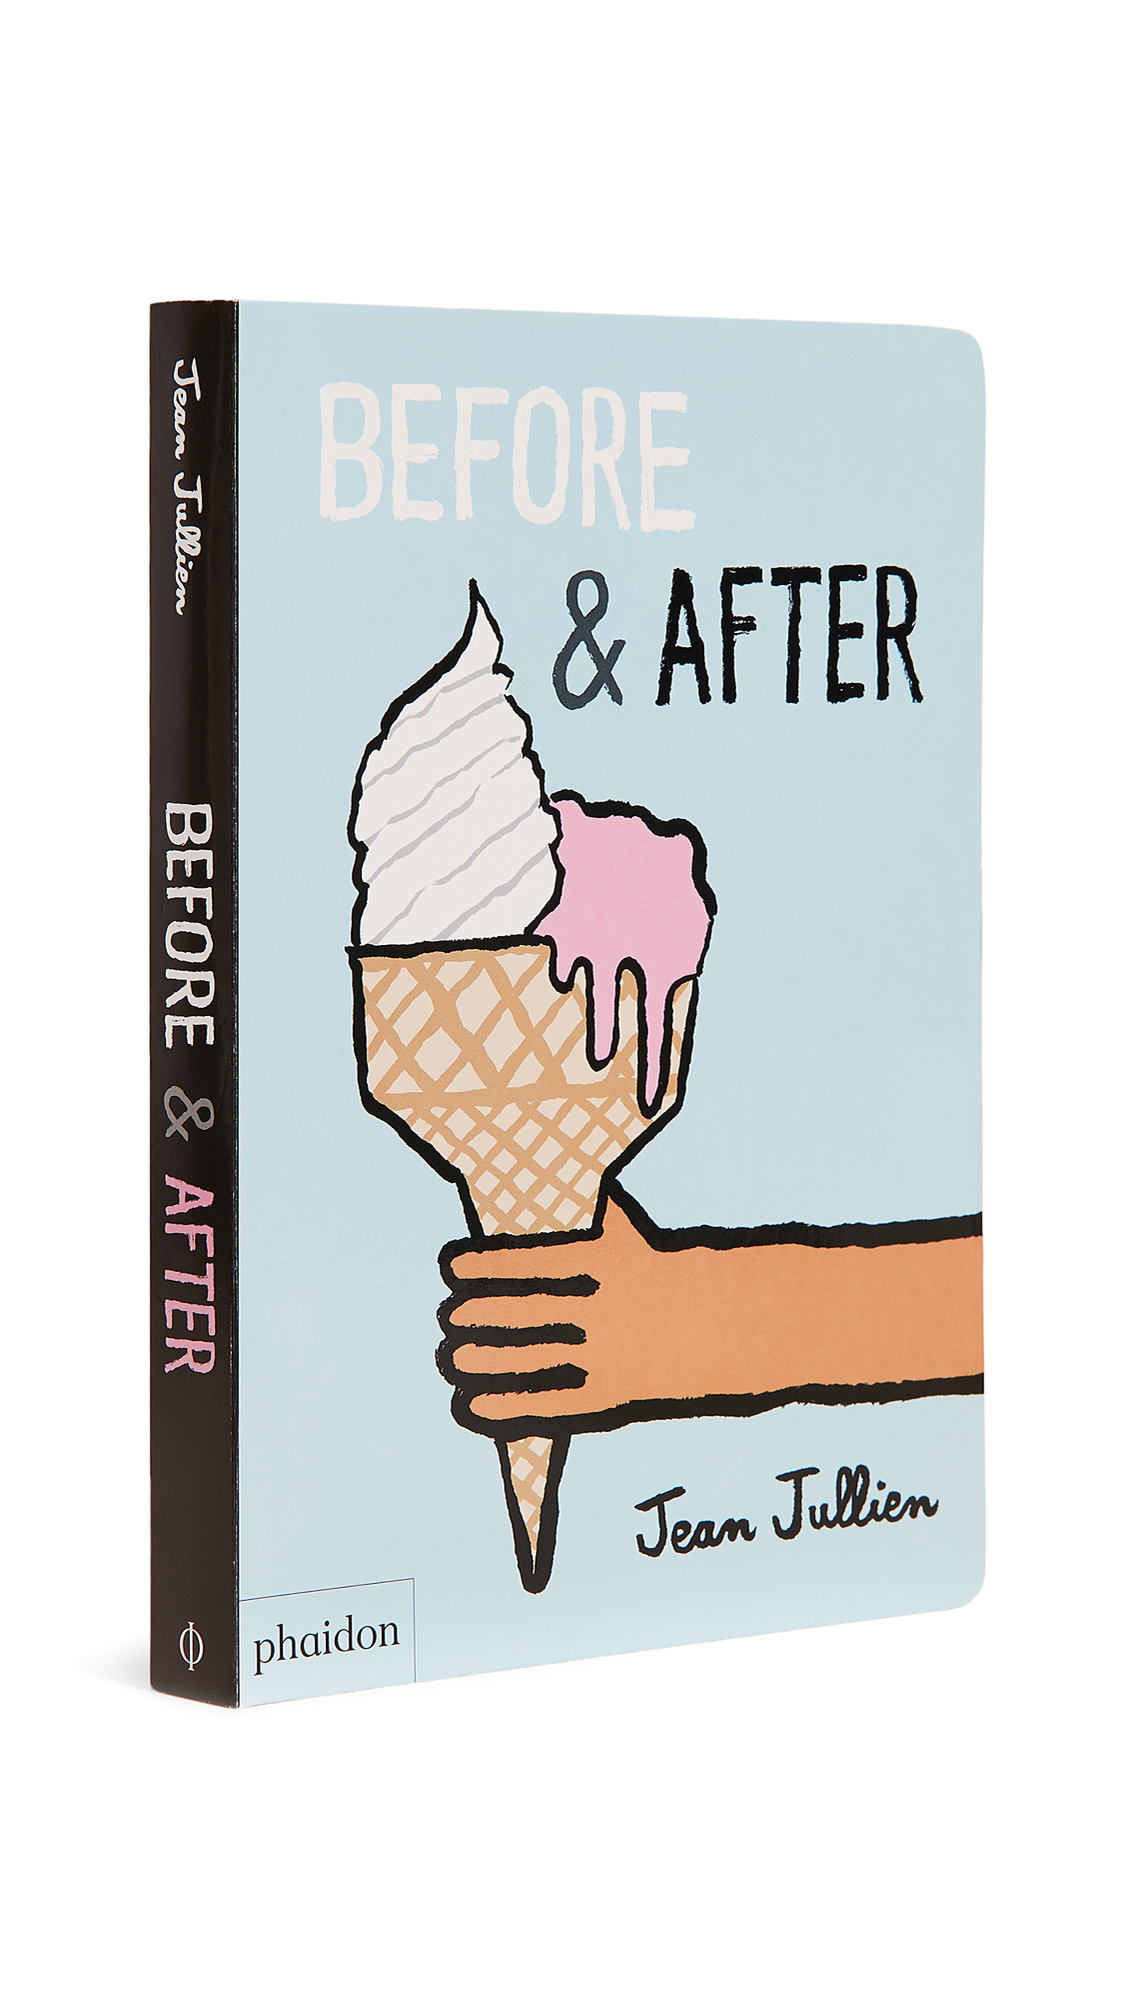 Board book Imported, China By Jean Jullien Hardcover 40 pages Imprint: Phaidon Press Limited ISBN: 9780714874081 Measurements Width: 1in / 2.5cm Height: 9in / 23cm Length: 6.5in / 16.5cm